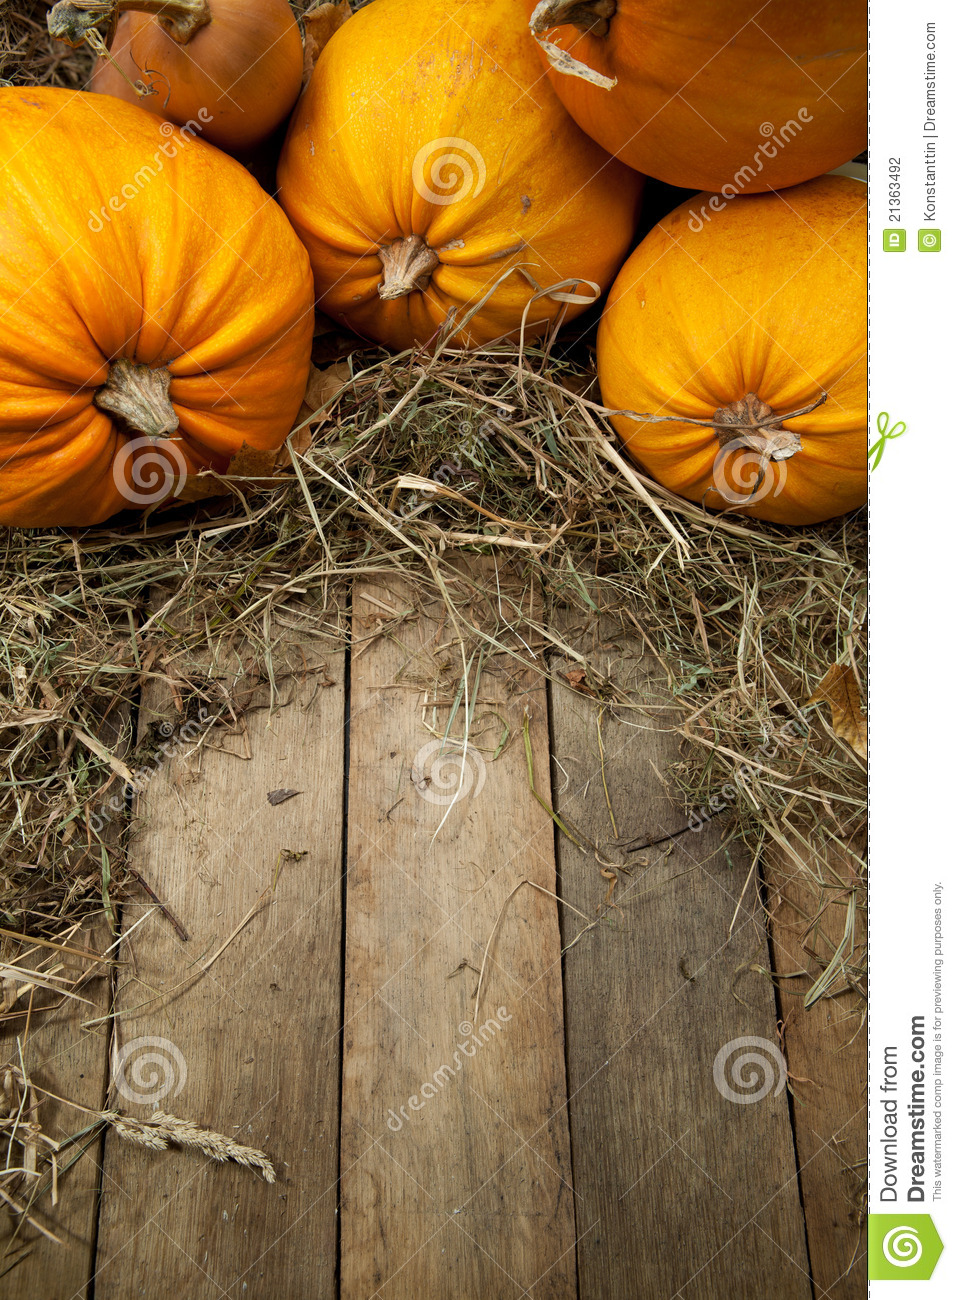 Free Fall Pumpkin Wallpaper Art Orange Pumpkins On Wooden Background Stock Photography